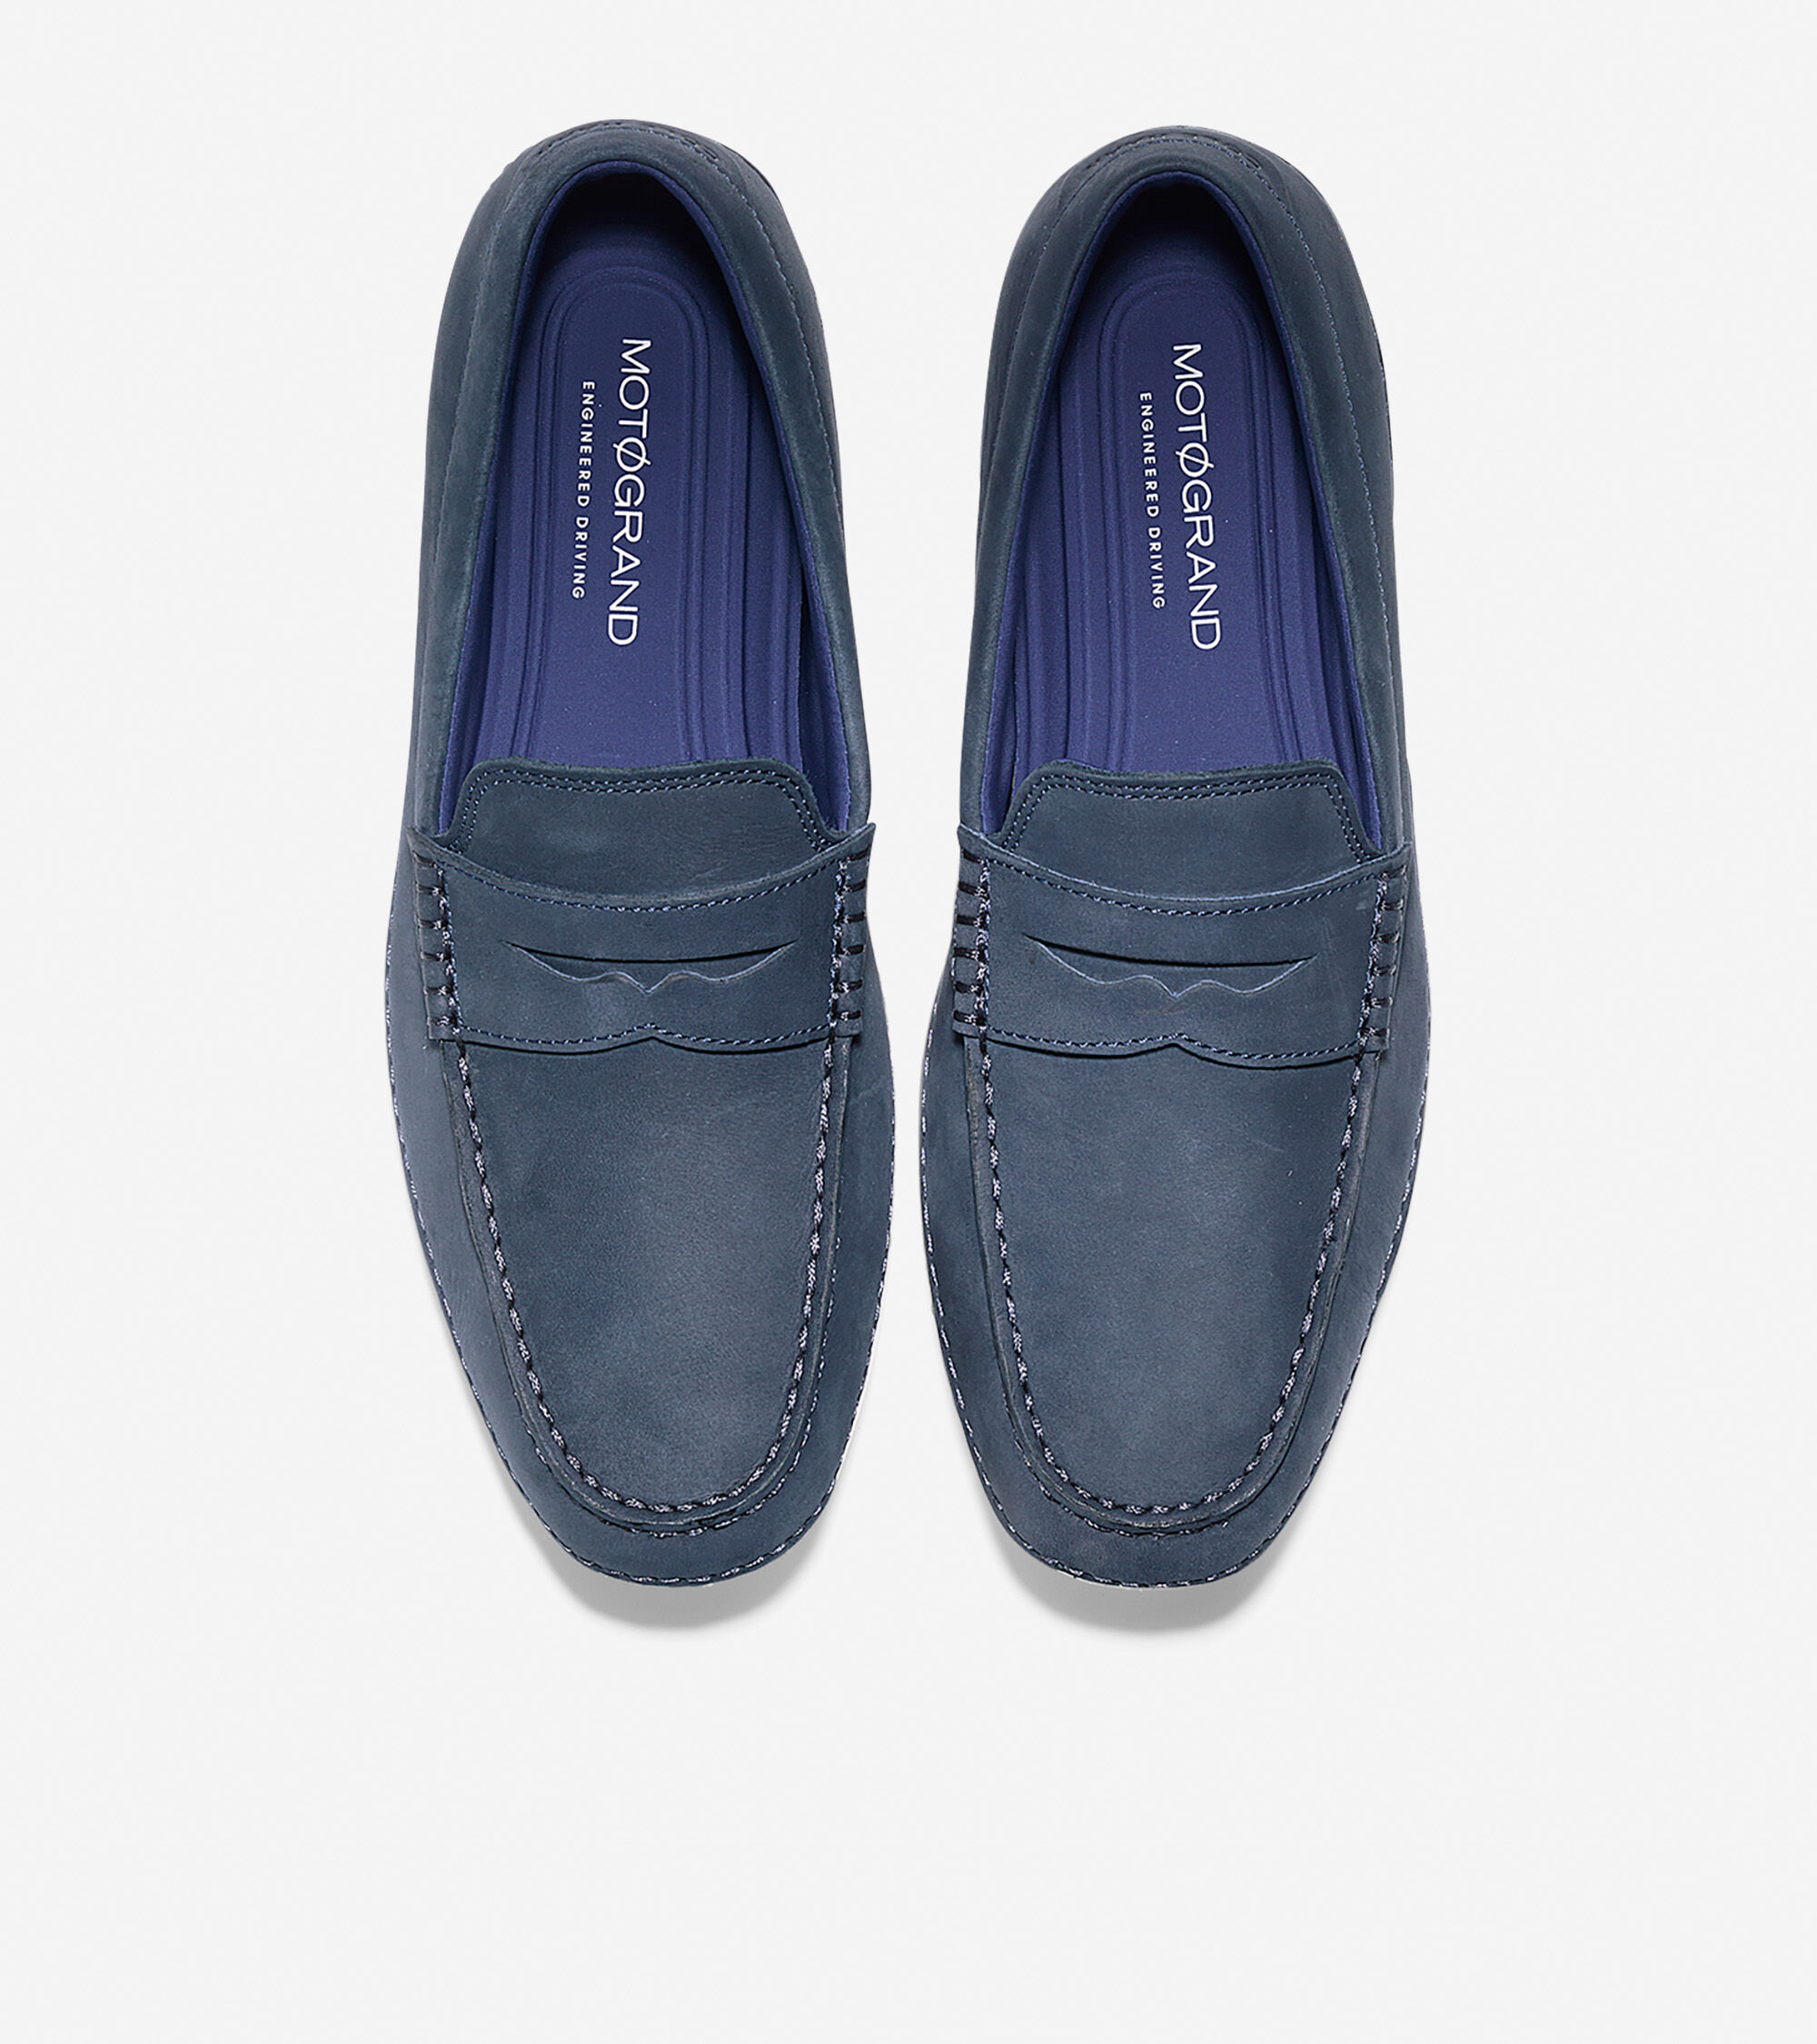 4aef60439e Men's MotoGrand Penny Drivers in Navy Ink | Cole Haan